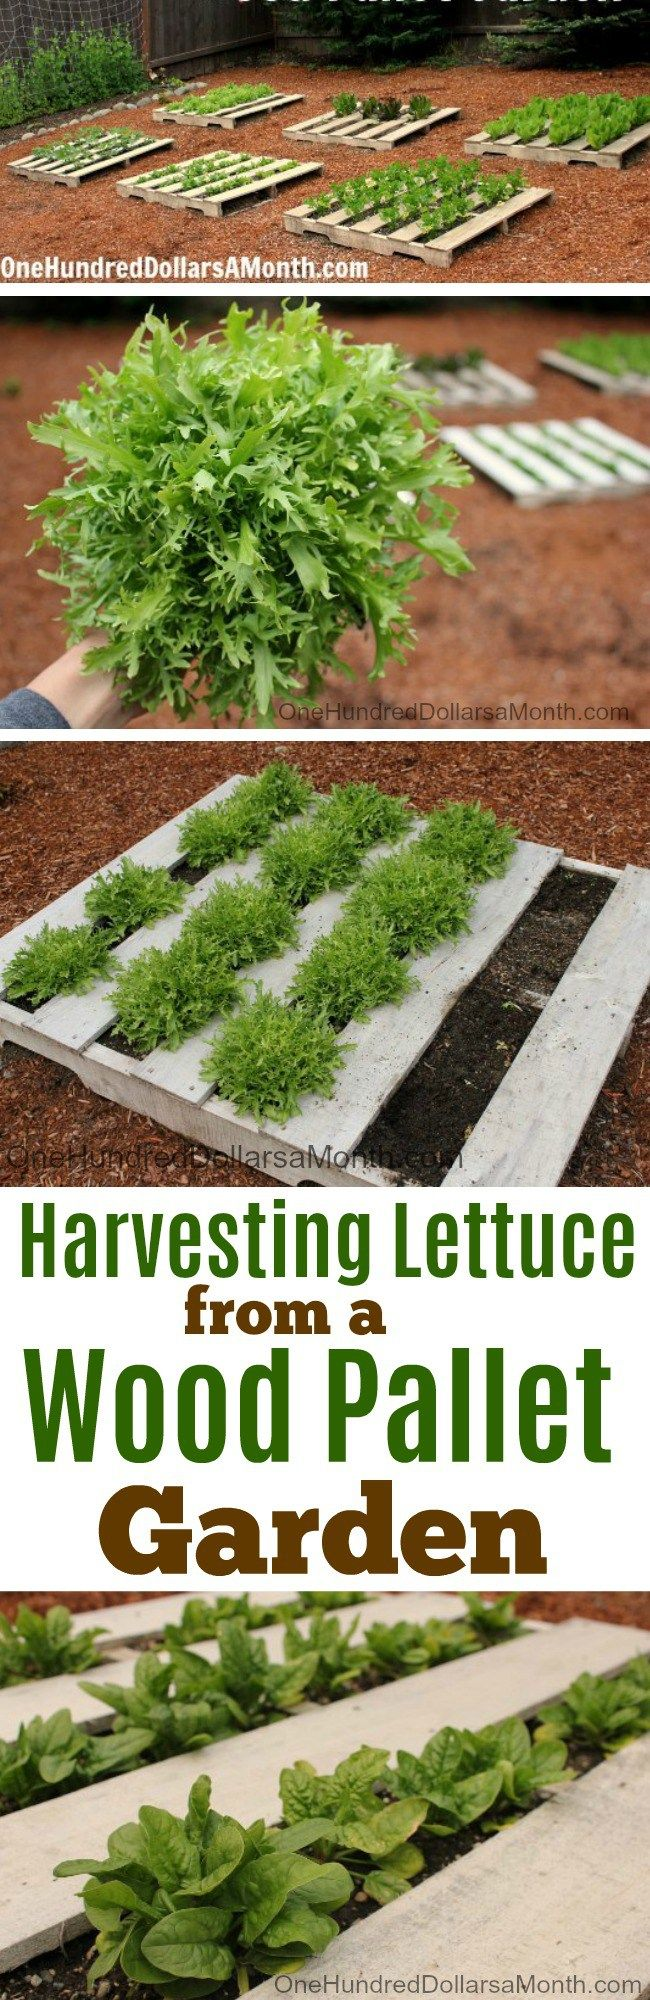 Wood Pallet Garden, Harvesting Lettuce, Growing Lettuce, Wood pallet Gardens, Wood Pallet Vegetable Gardens, Gardening Tips, How to Grow Lettuce